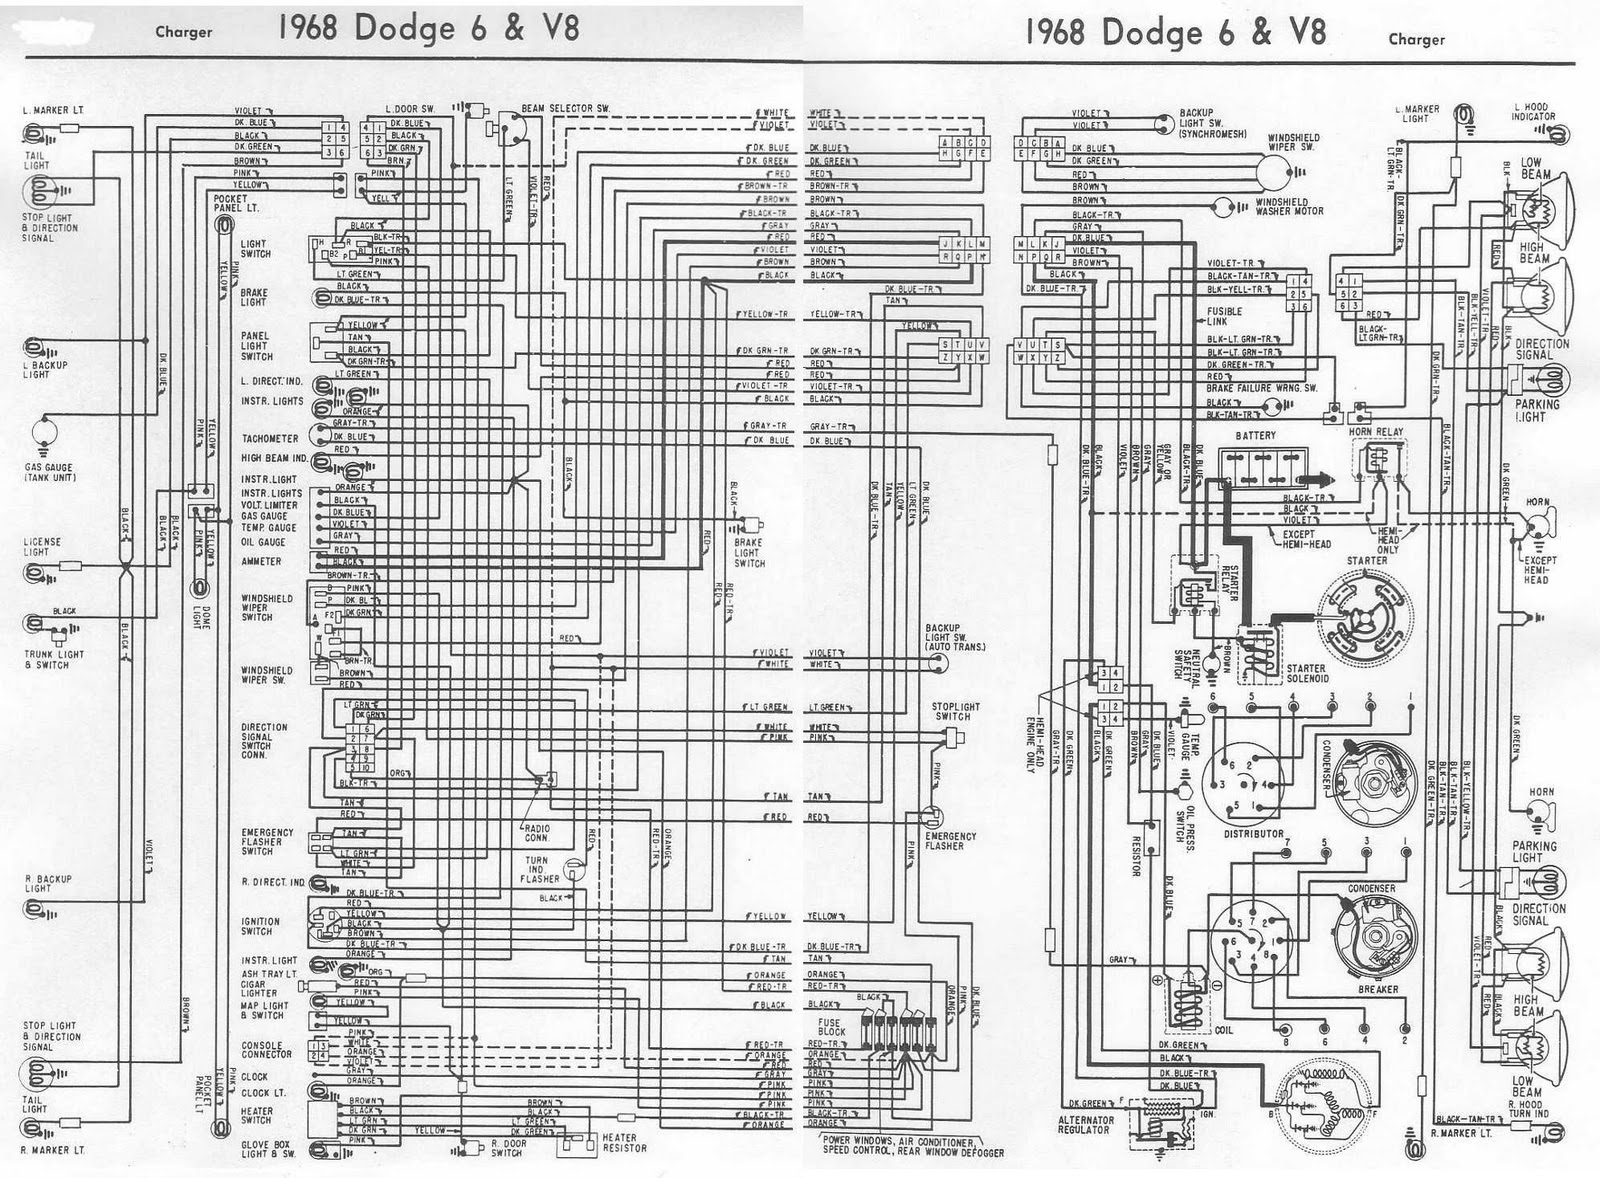 54 chrysler new yorker wiring diagram 2 8 combatarms game de u20221954 chrysler new yorker [ 1600 x 1178 Pixel ]